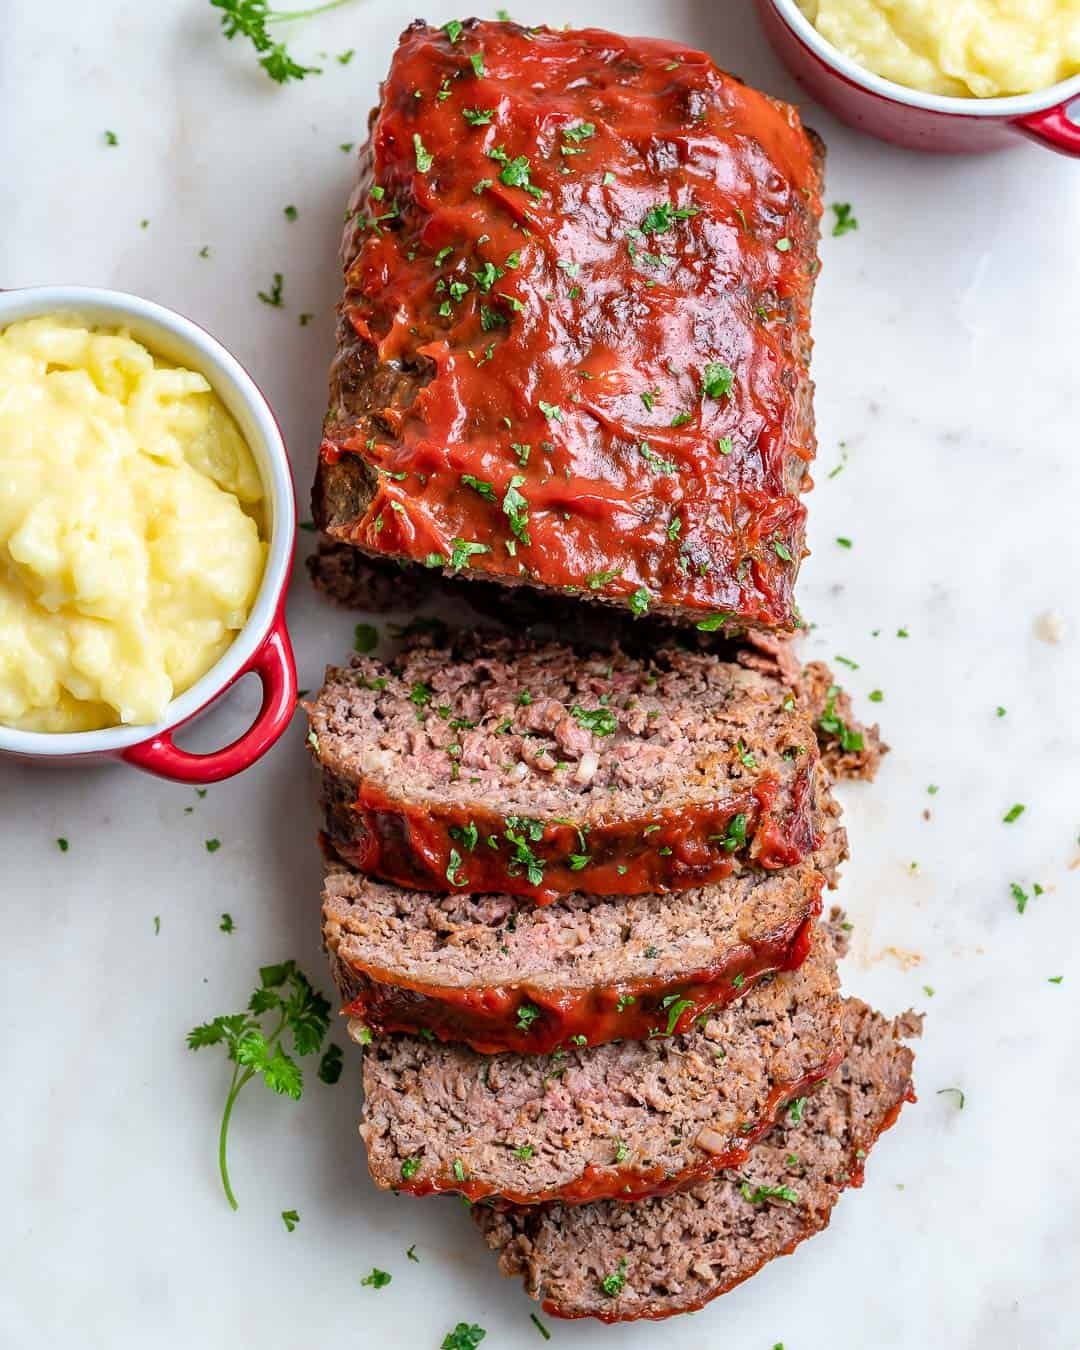 homemade classic meatloaf recipe